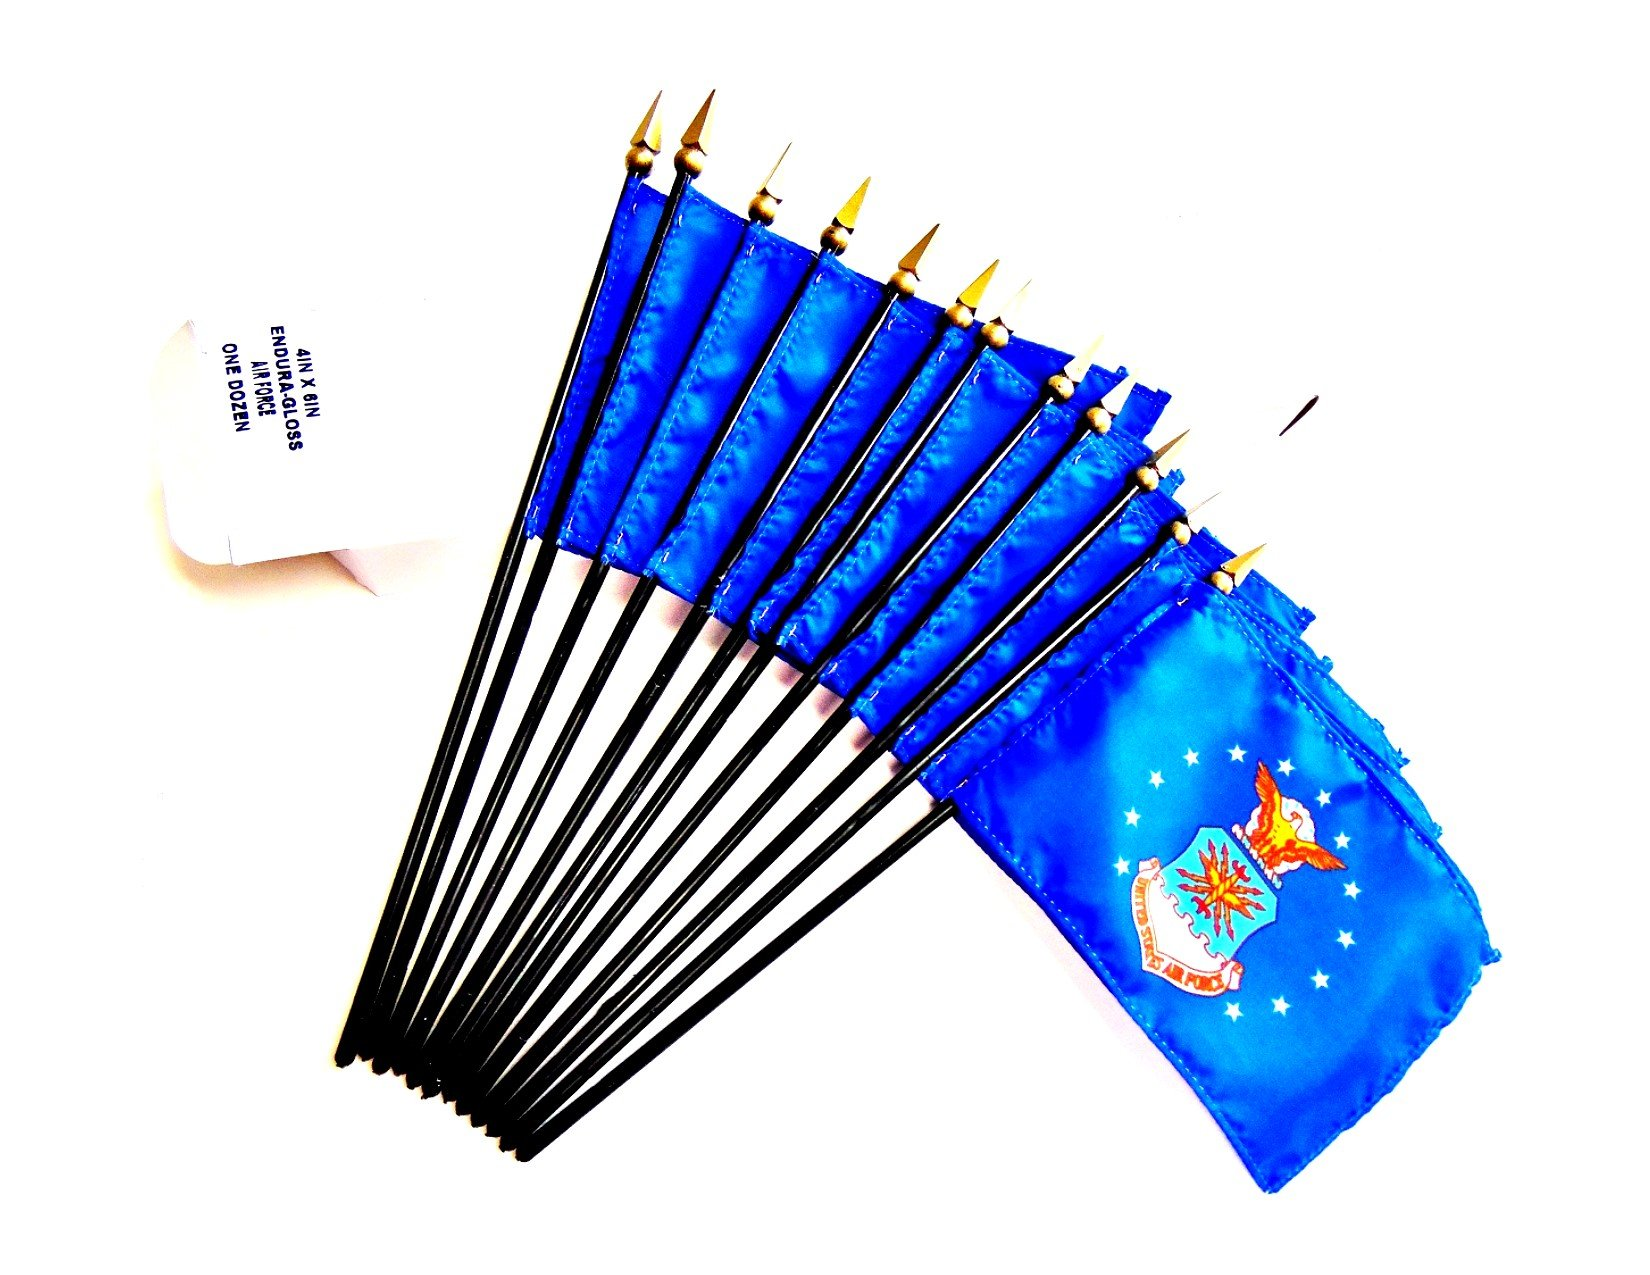 MADE IN USA!! Box of 12 US Air Force 4''x6'' Miniature Desk & Table Flags; 12 American Made Small Mini United States Air Force Flags in a Custom Made Cardboard Box Specifically Made for These Flags